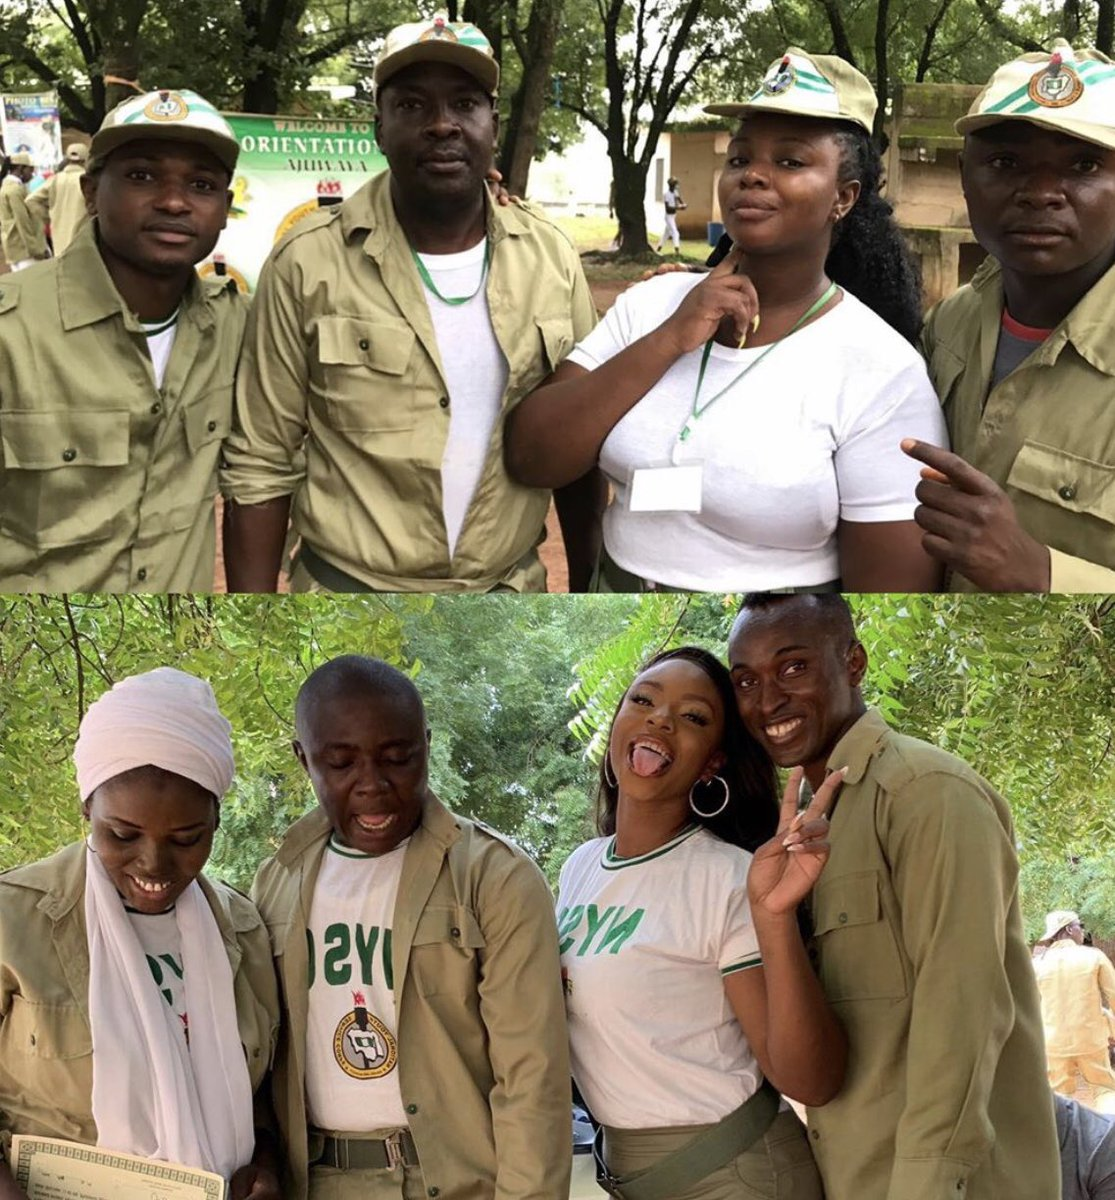 Photos: How She Started NYSC vs How She Finished - Corp Member Shows Off Her Body Transformation